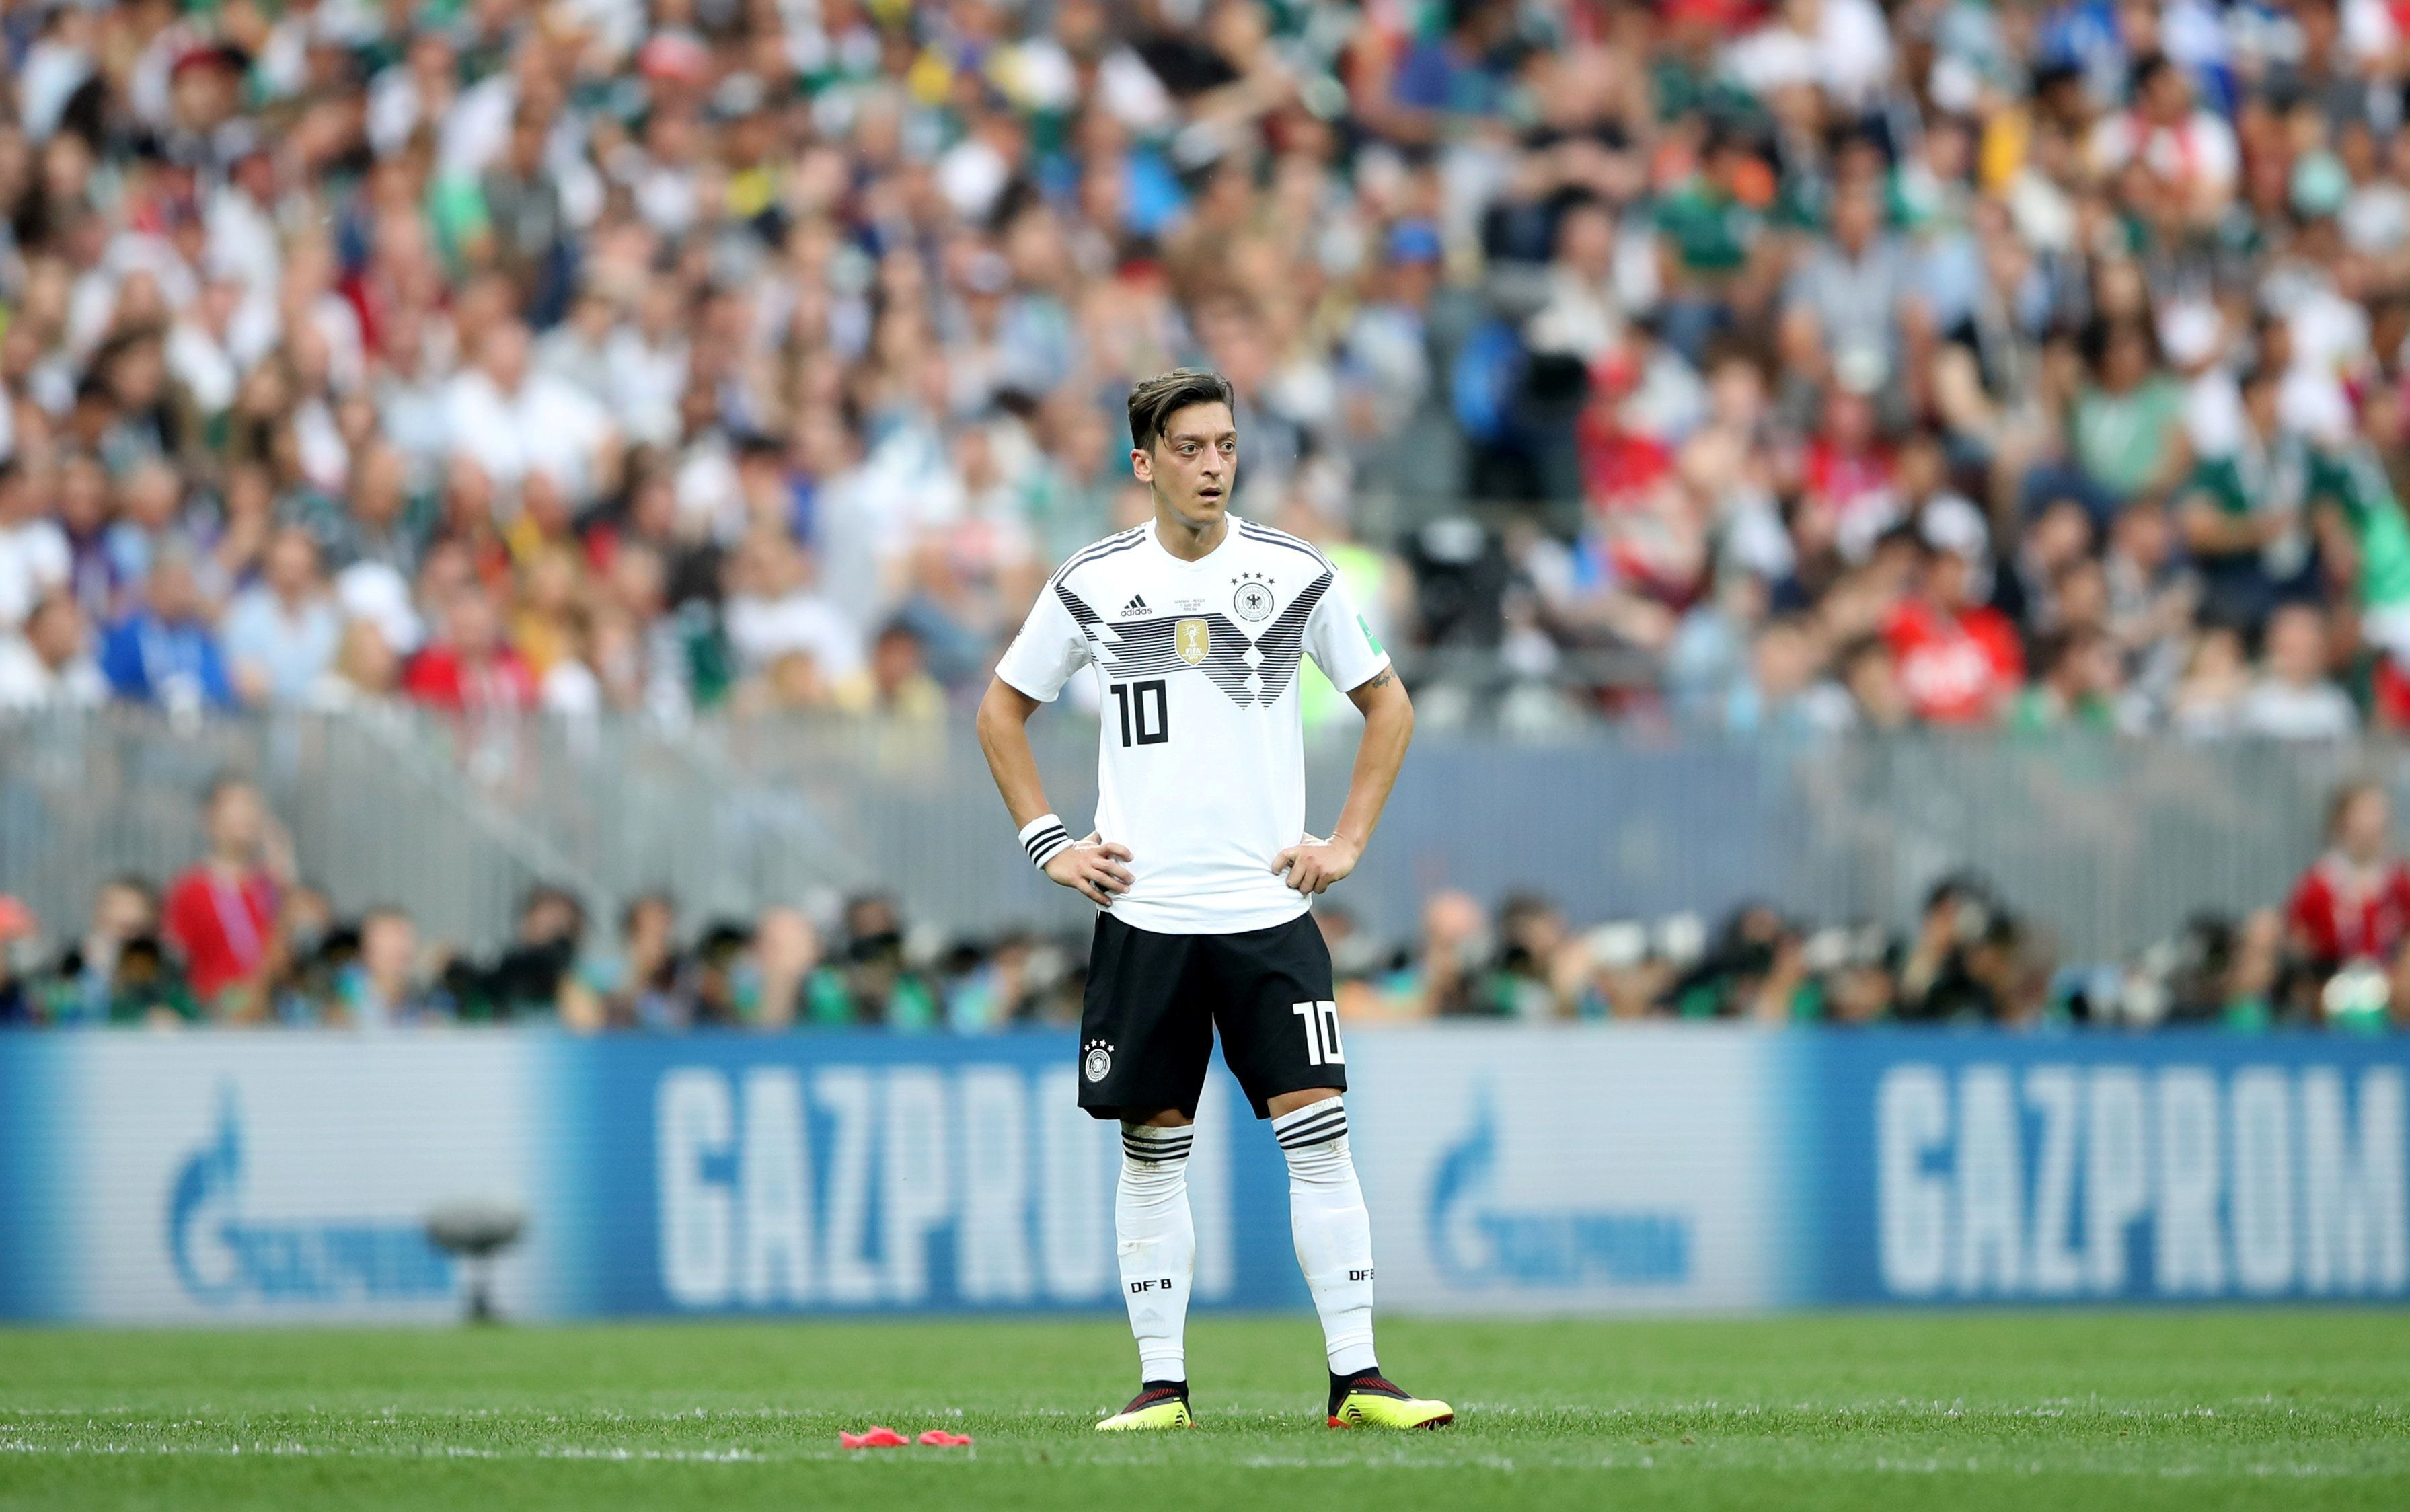 Germany's Mesut Özil Was A National Soccer Hero. Now He's A Scapegoat For